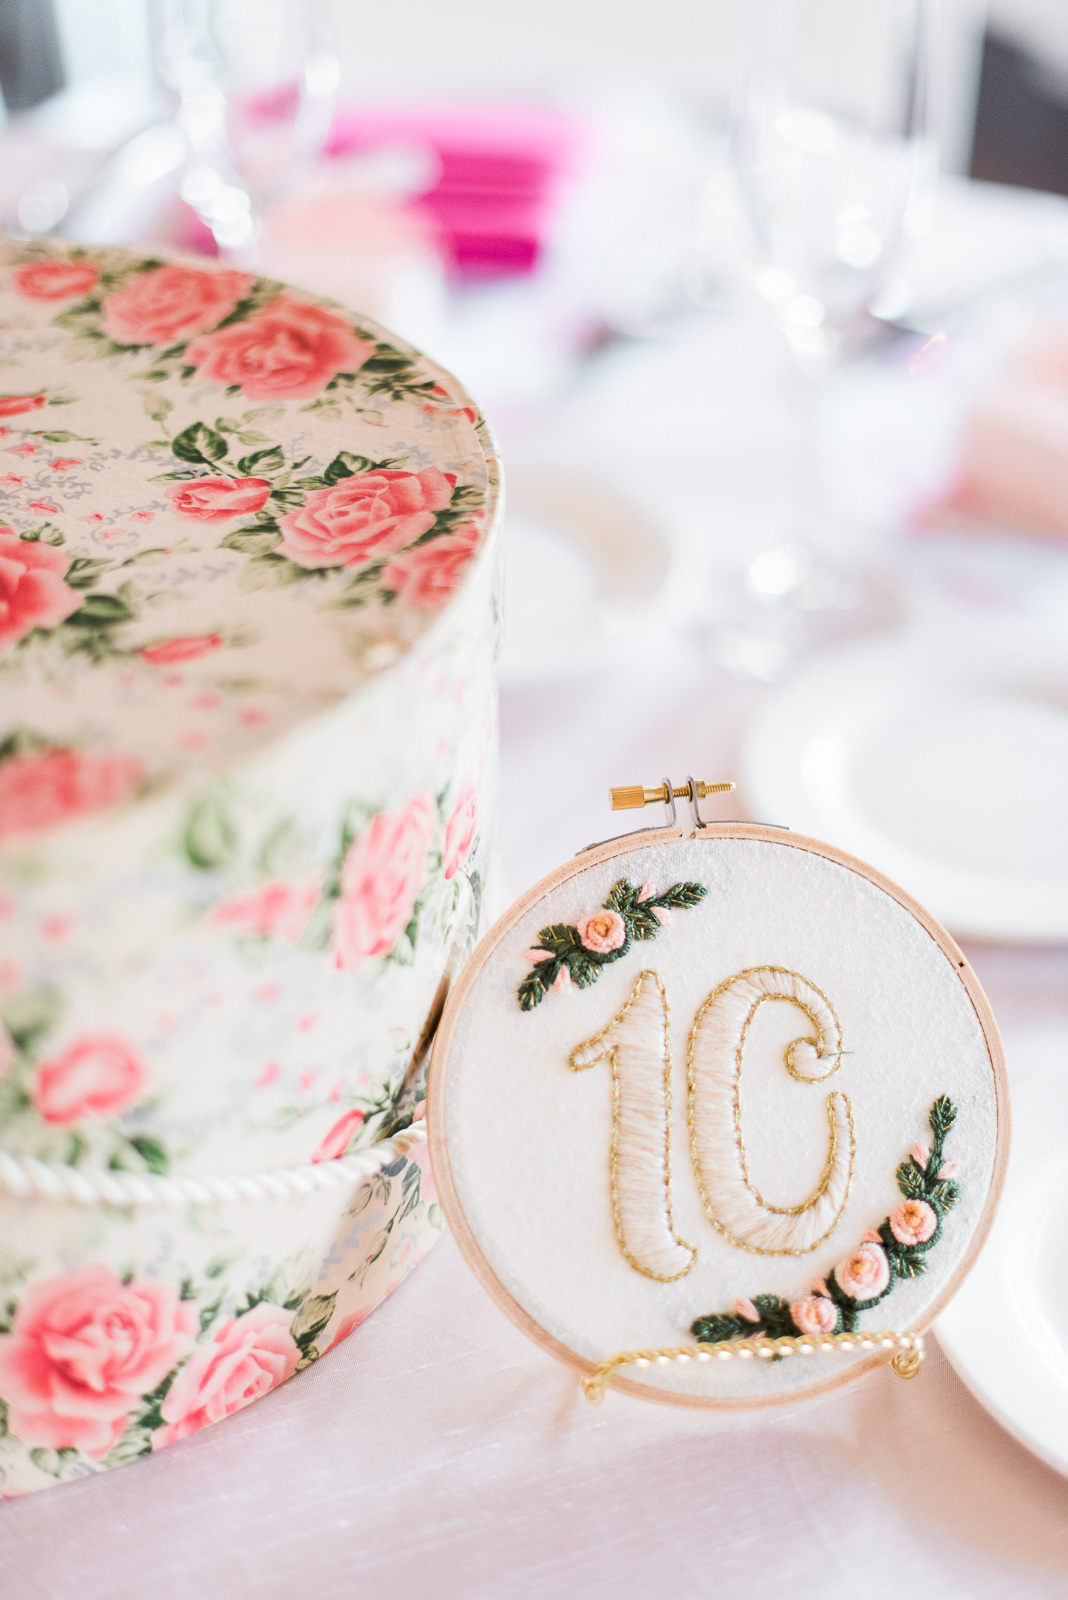 embroidered table numbers via https://etsy.me/2xuxqky